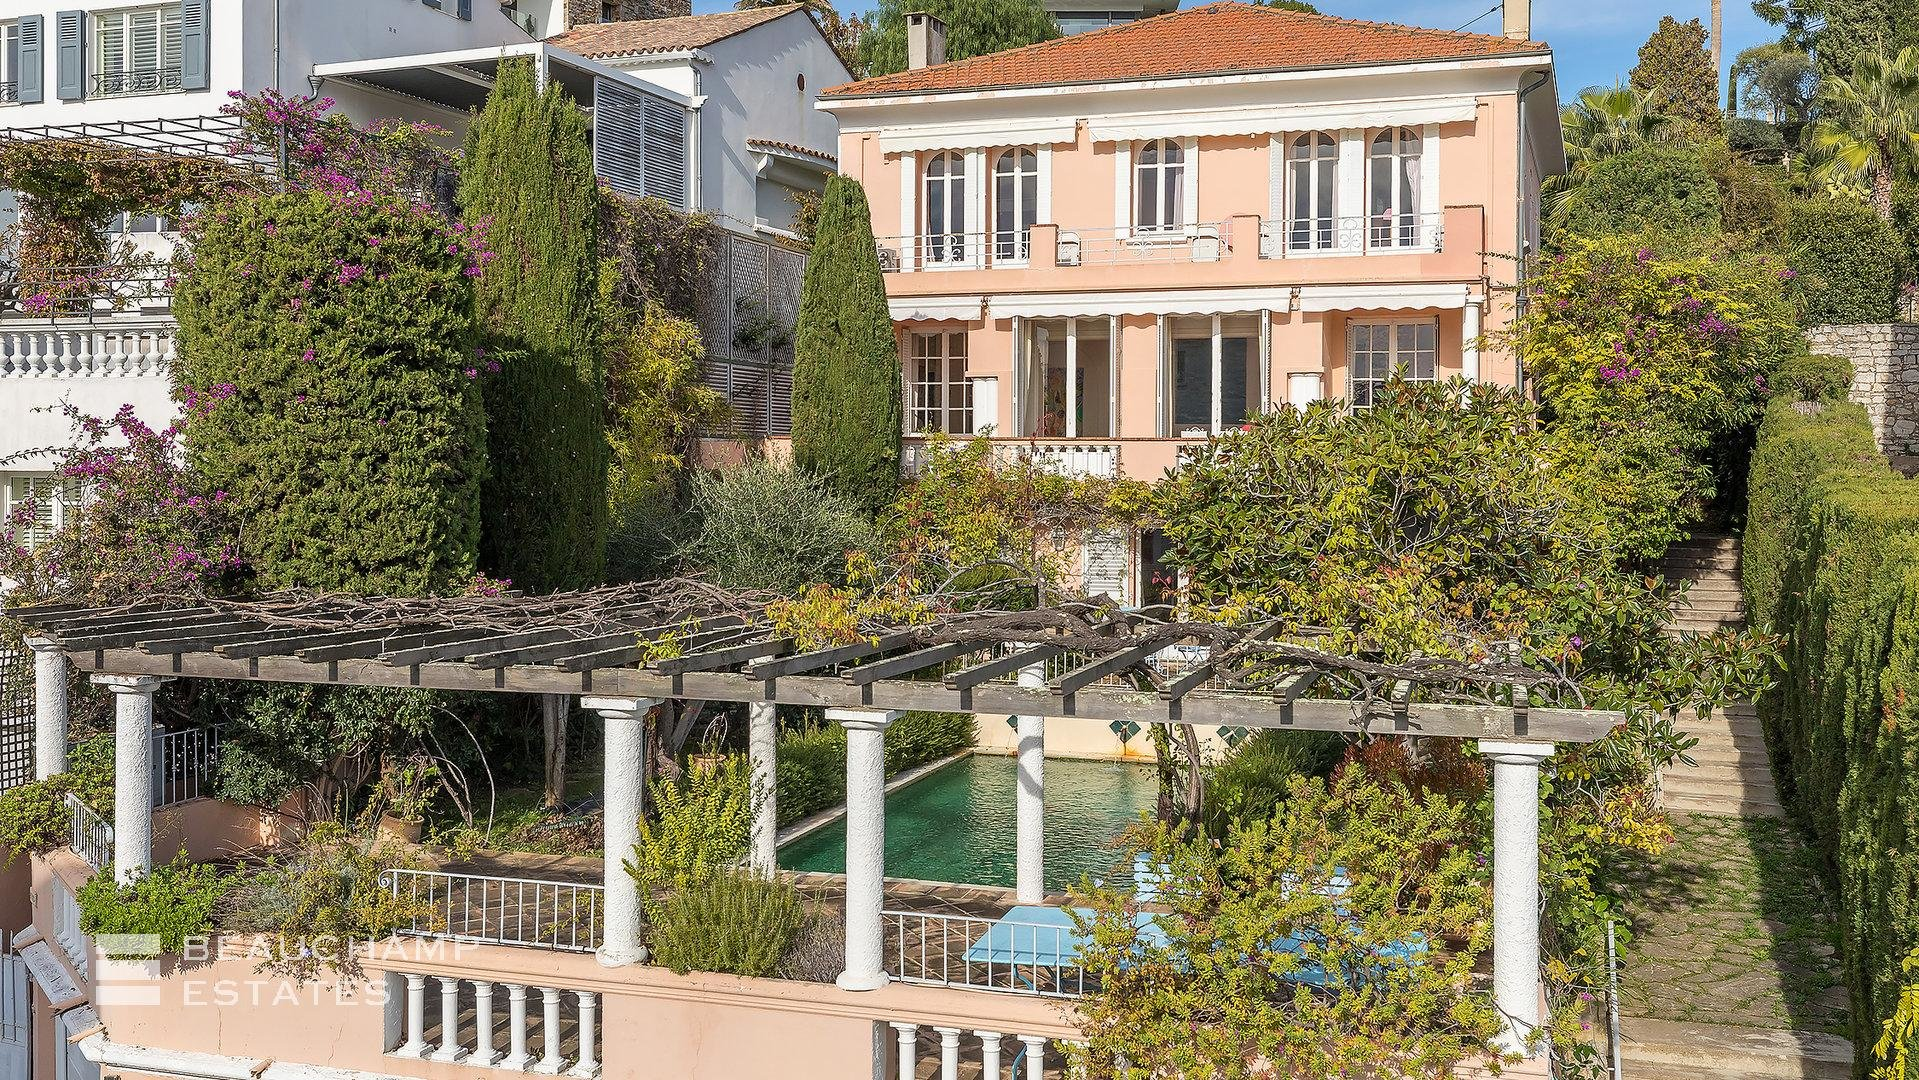 Charming house located on the hills of Cannes